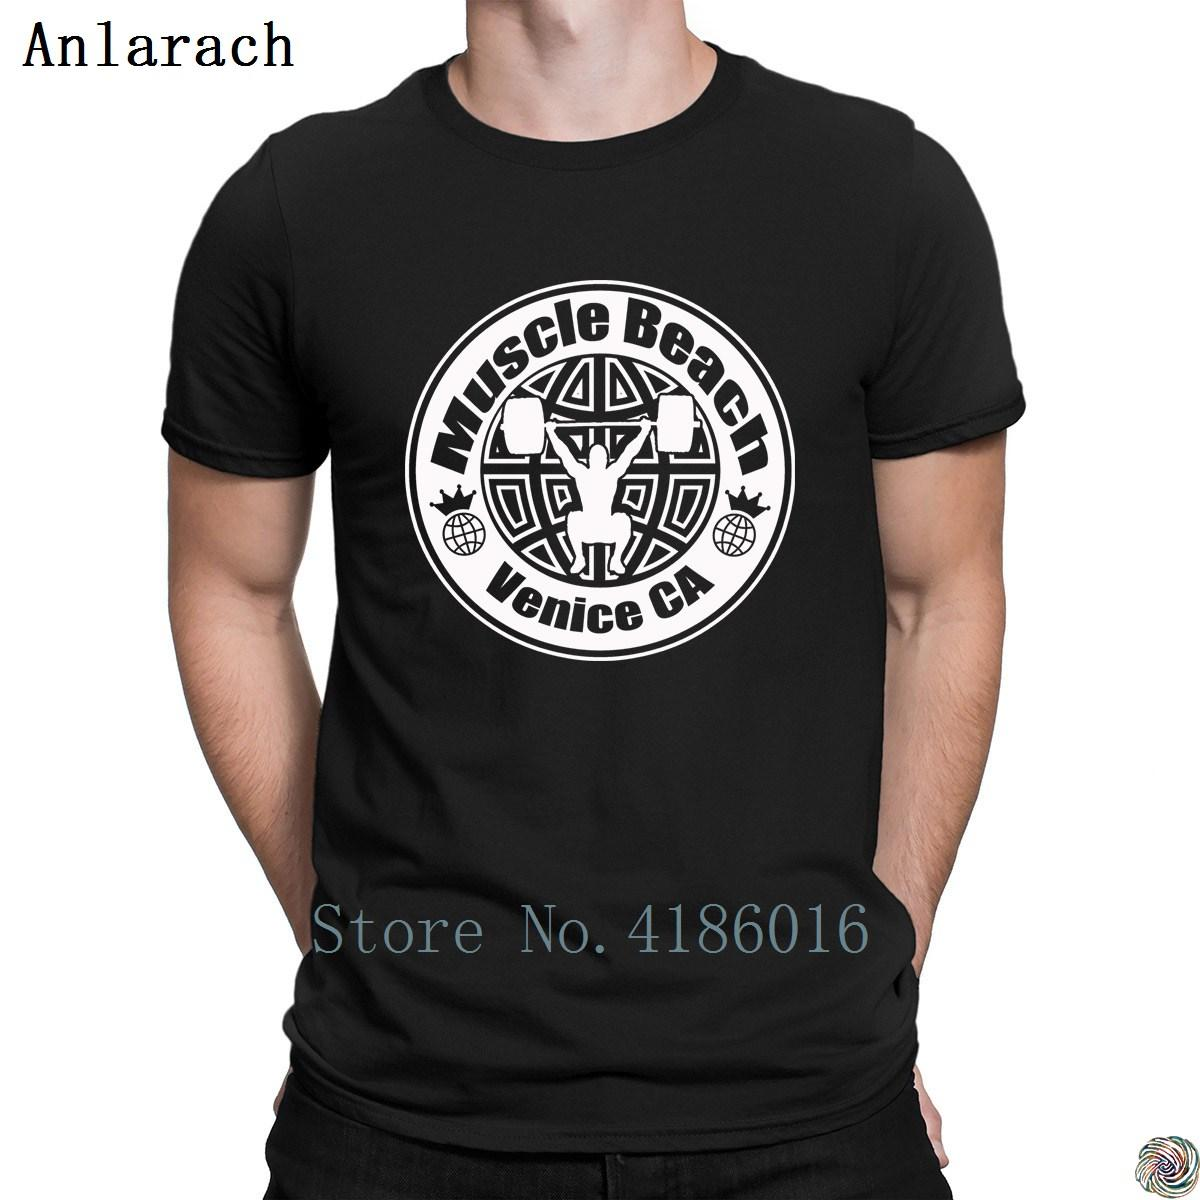 1d1b5946 MUSCLE BEACH GEAR T Shirt O Neck Outfit Creative Summer T Shirt For Men  Solid Color Tee Top New Style Tee Shirt Family Irish T Shirts Art T Shirts  From ...